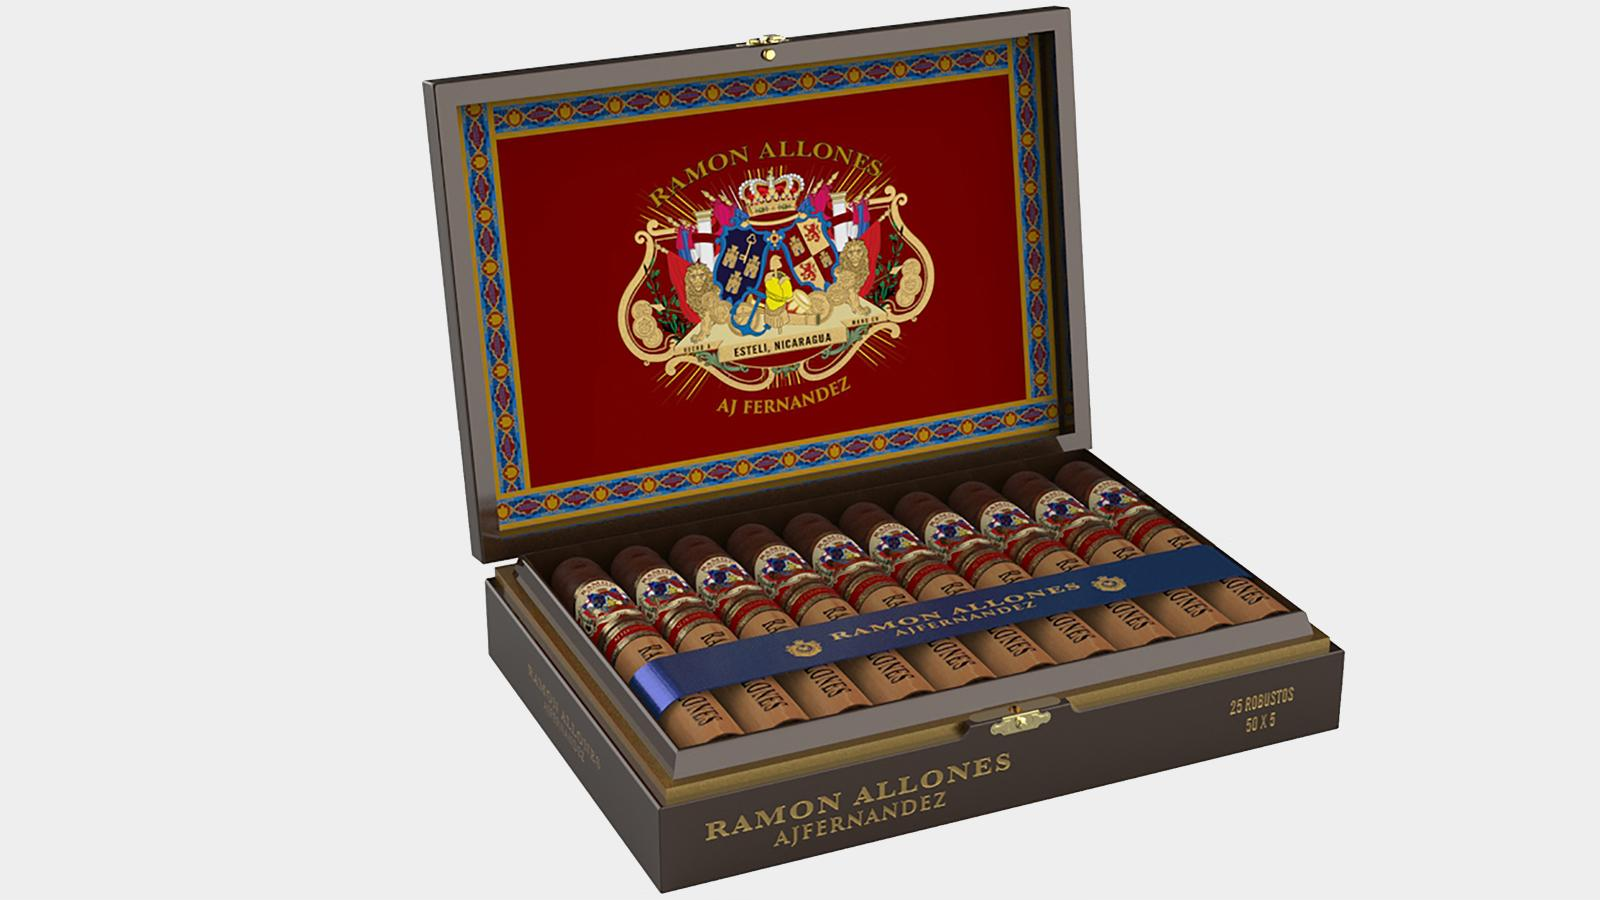 A.J. Fernandez To Produce And Distribute Ramon Allones